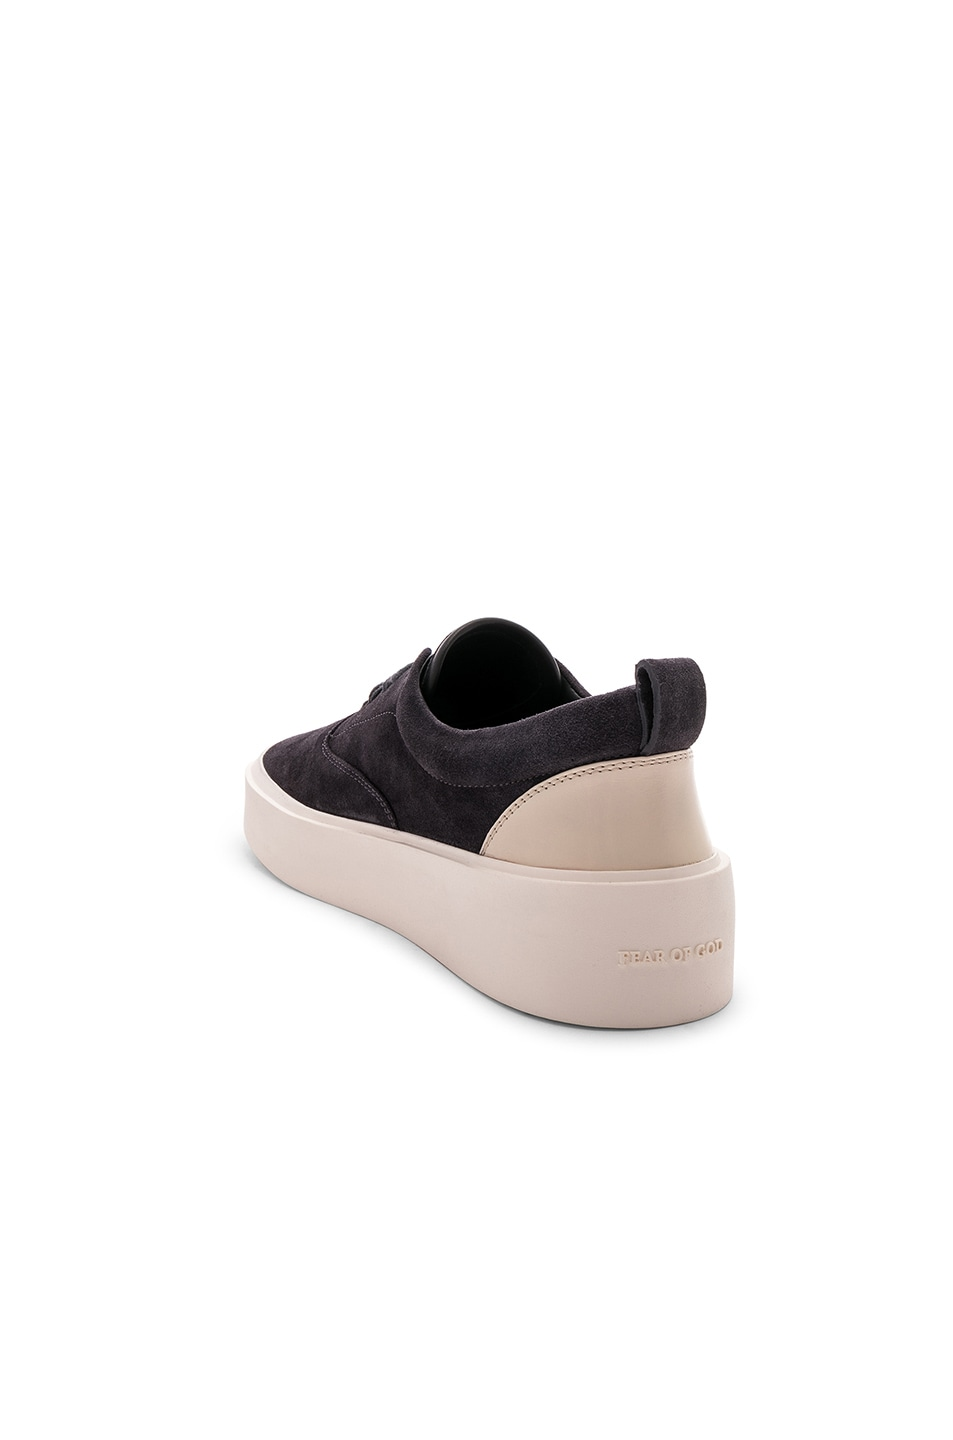 Image 3 of Fear of God Suede 101 Lace Up in Vintage Black